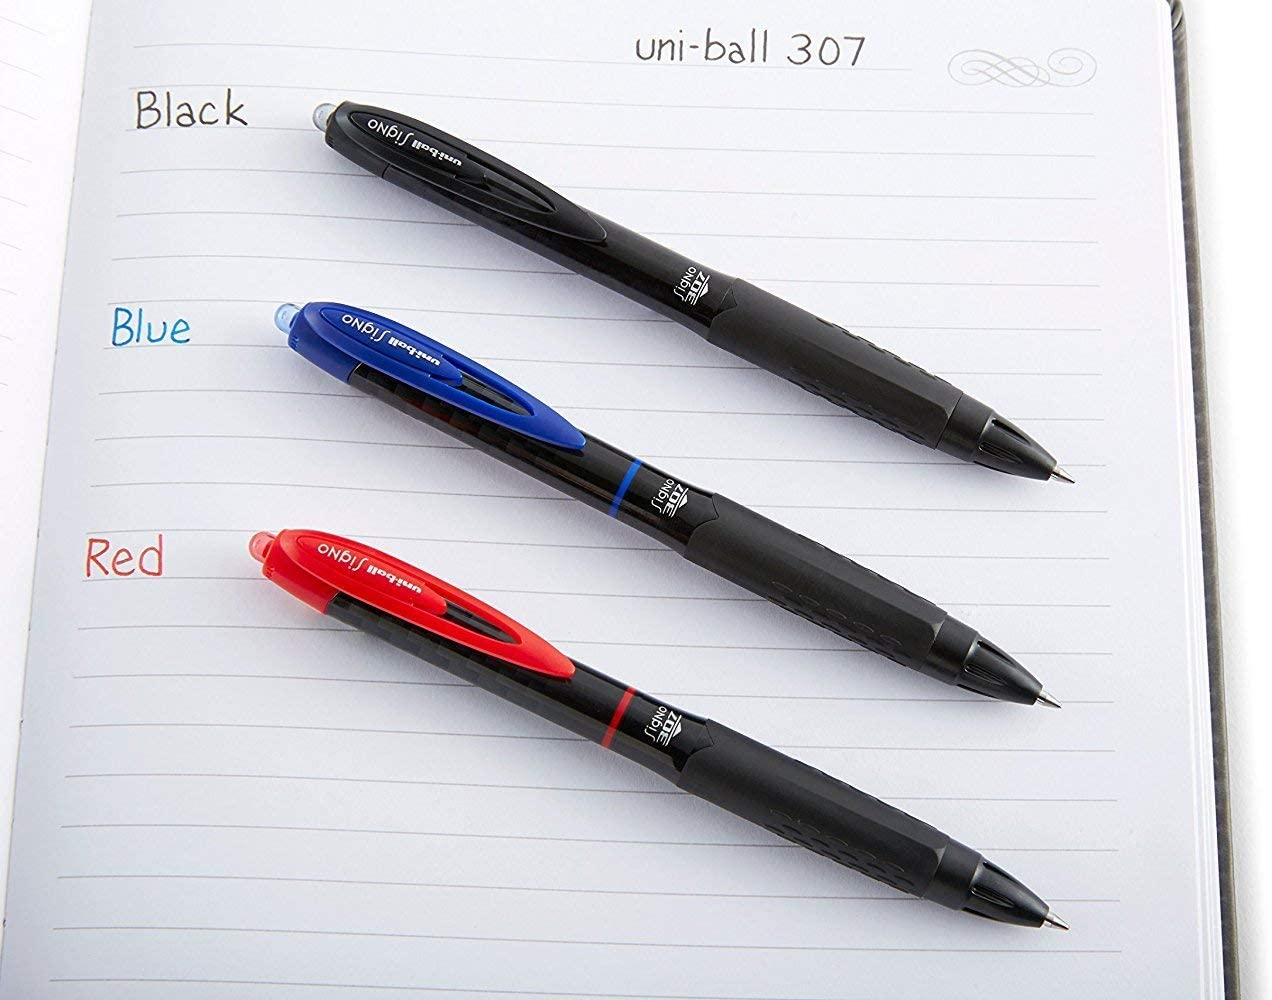 Medium Point 0.7mm Uni-Ball Signo 307 Retractable Gel Ink Pens 3 Blue 3 Red Total of 6